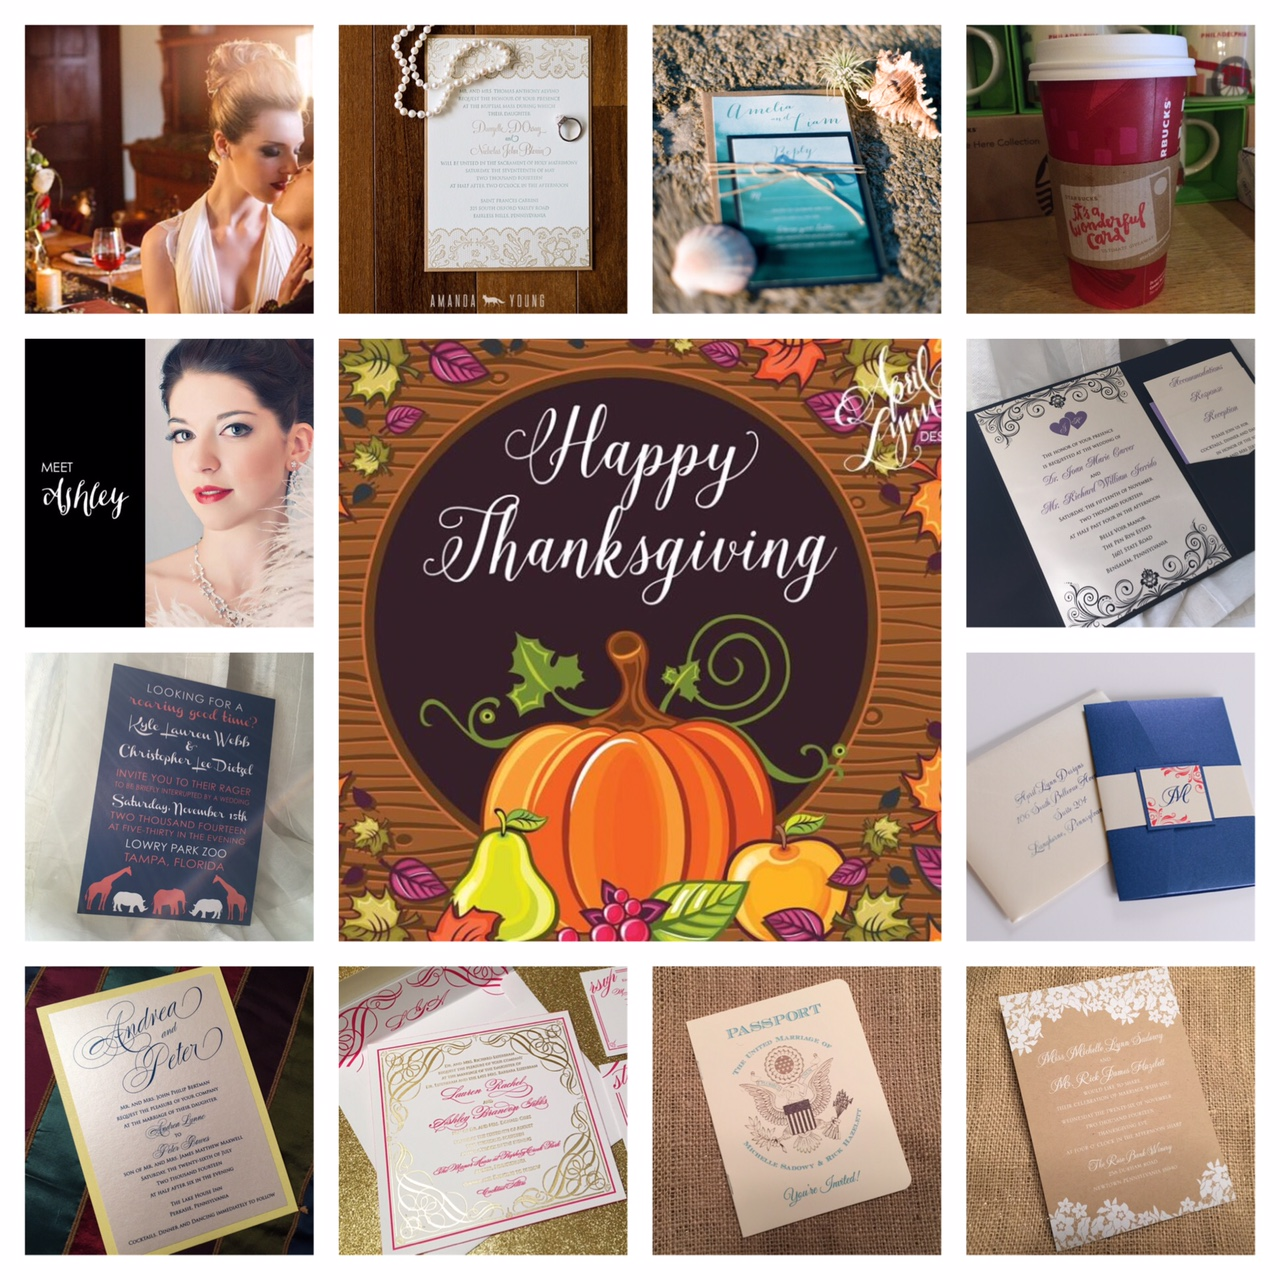 Philadelphia Wedding Stationery Designer | April Lynn Designs Instamonth November